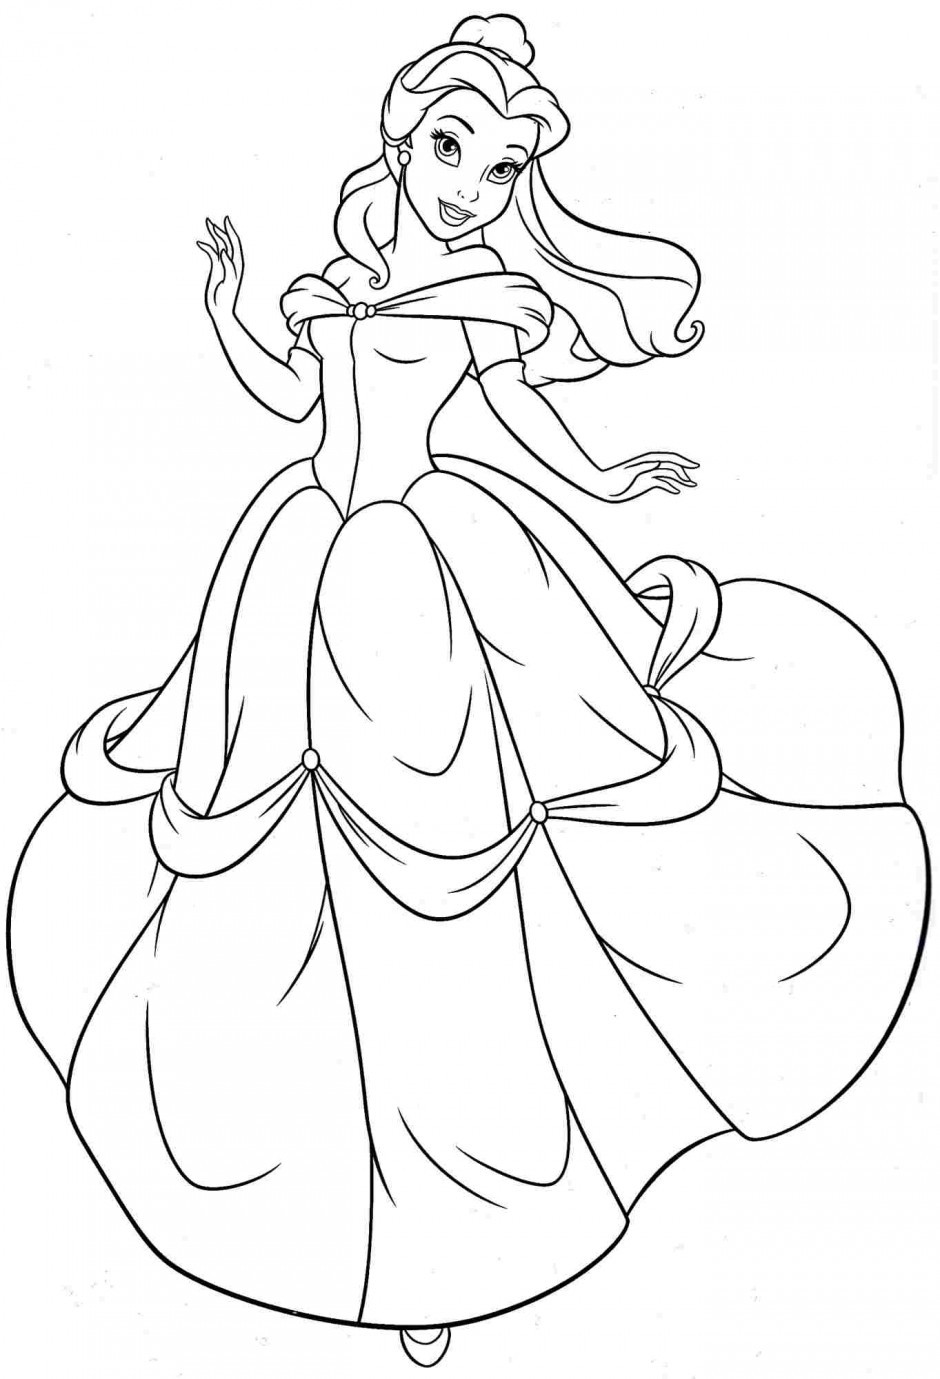 Best ideas about Free Princess Printable Coloring Pages . Save or Pin Free Printable Belle Coloring Pages For Kids Now.